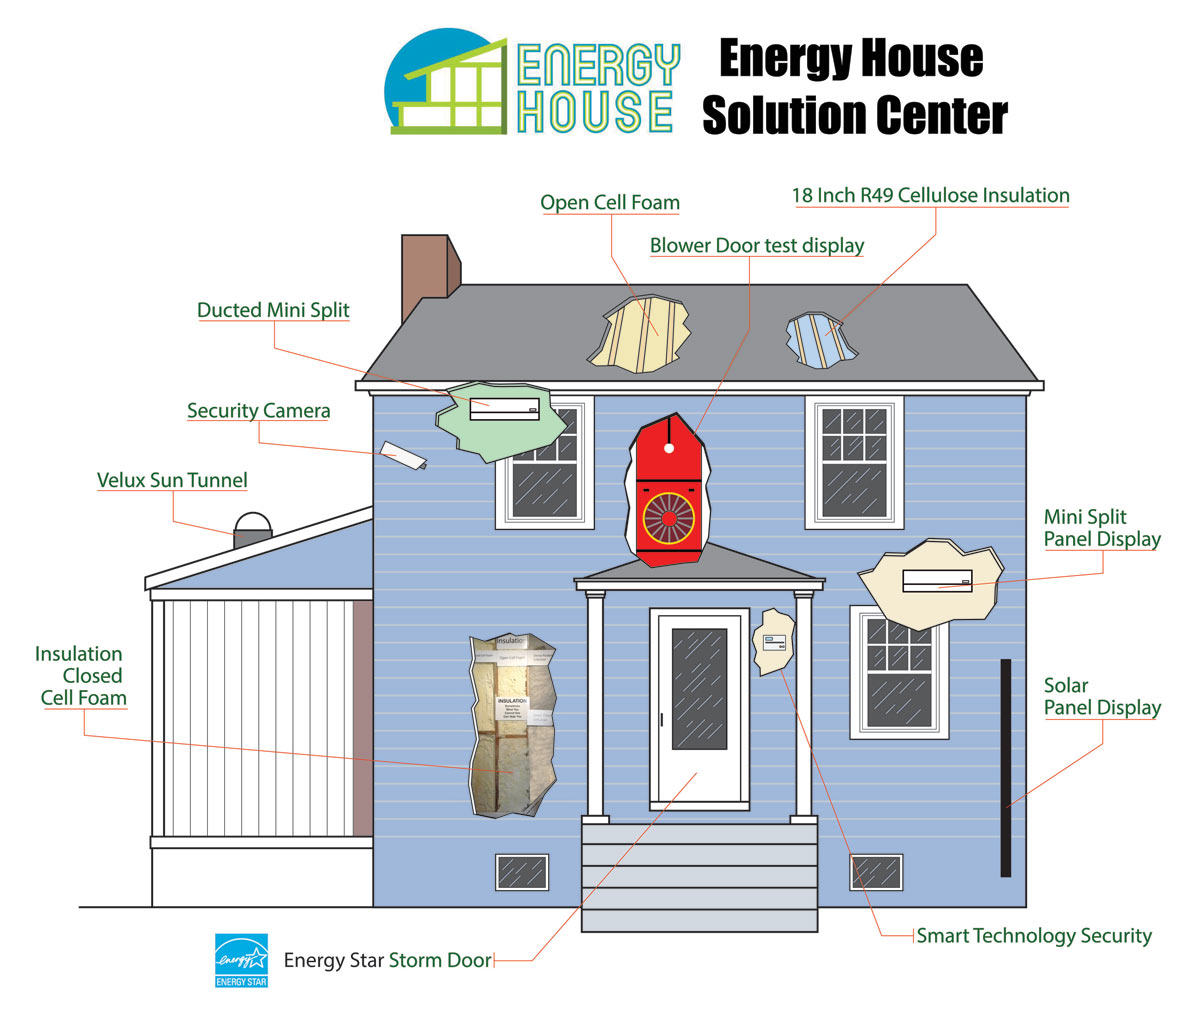 Energy House Solutions Center